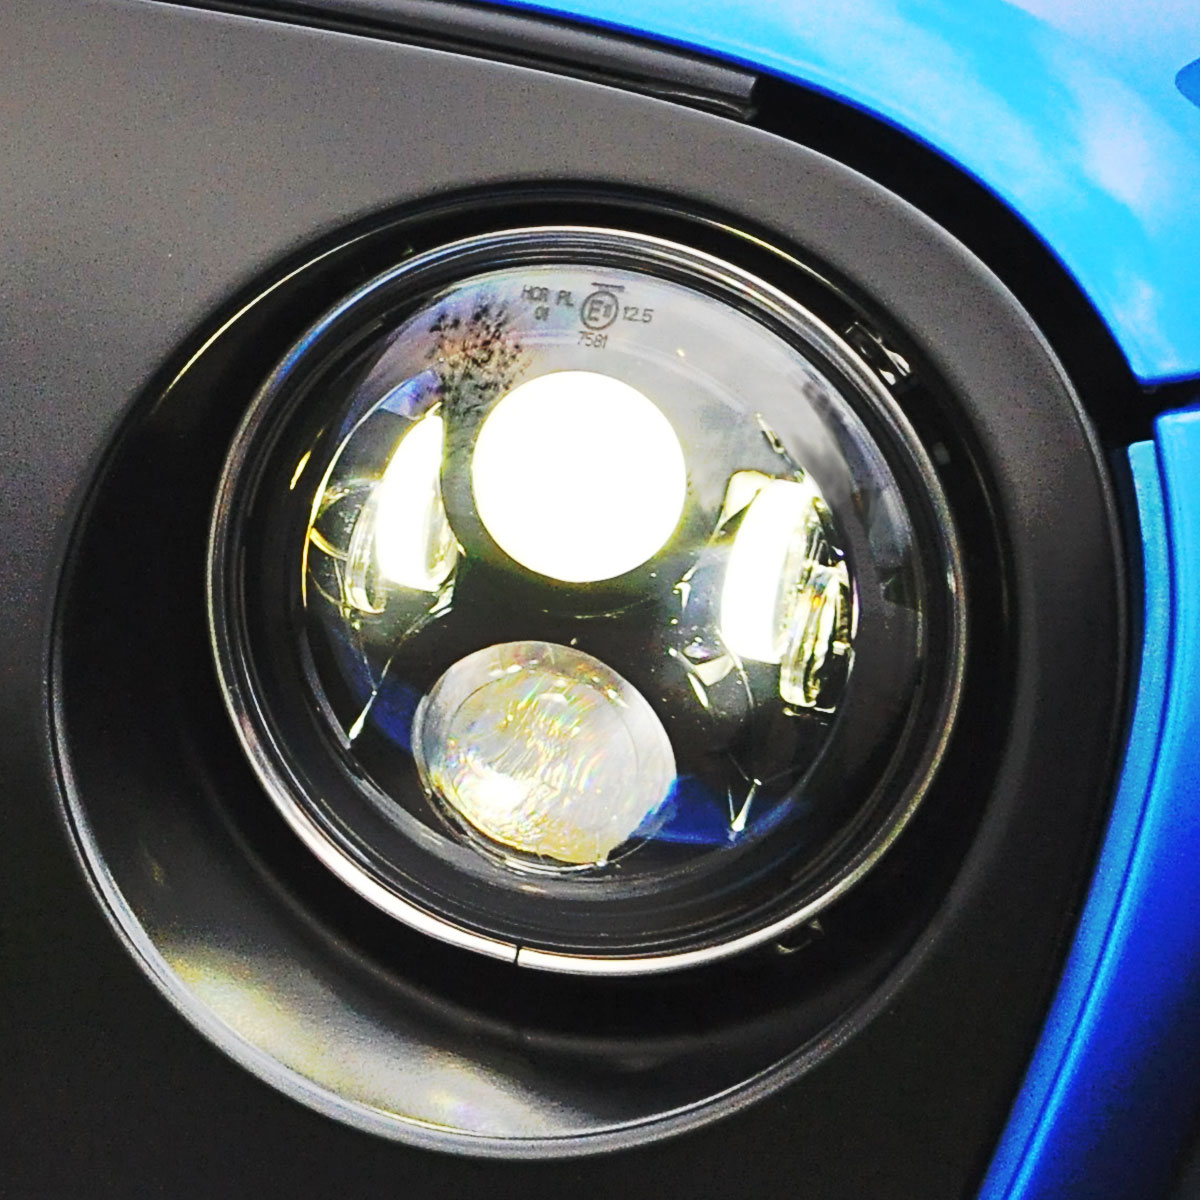 Wild LED headlights